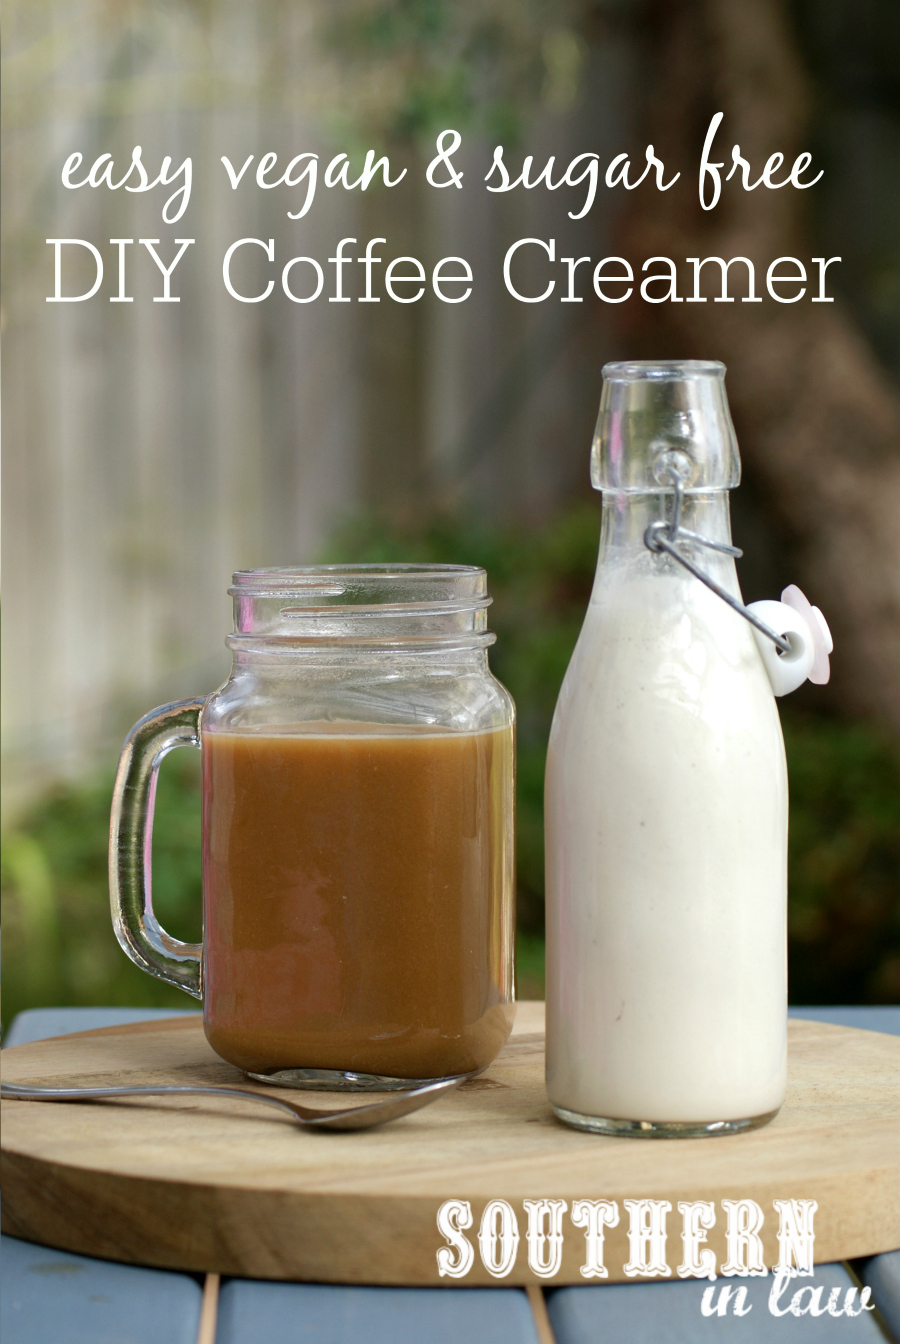 southern in law: recipe: easy vegan diy coffee creamer (or sweet cream!)